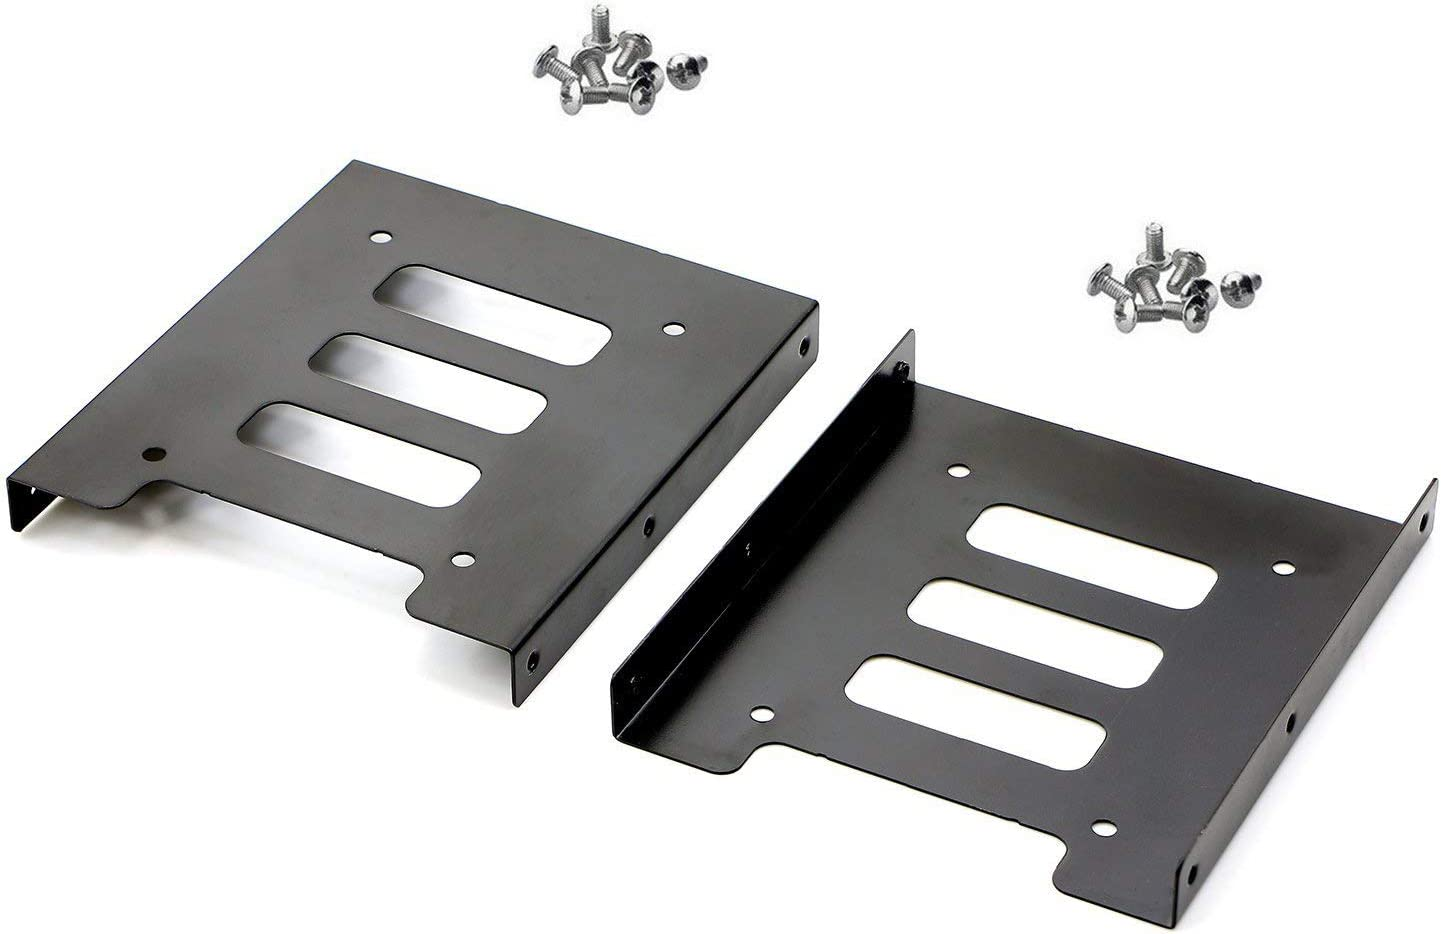 "Pasow 2 Pack 2.5"" to 3.5"" SSD HDD Hard Disk Drive Bays Holder Metal Mounting Bracket Adapter for PC (Bracket)"